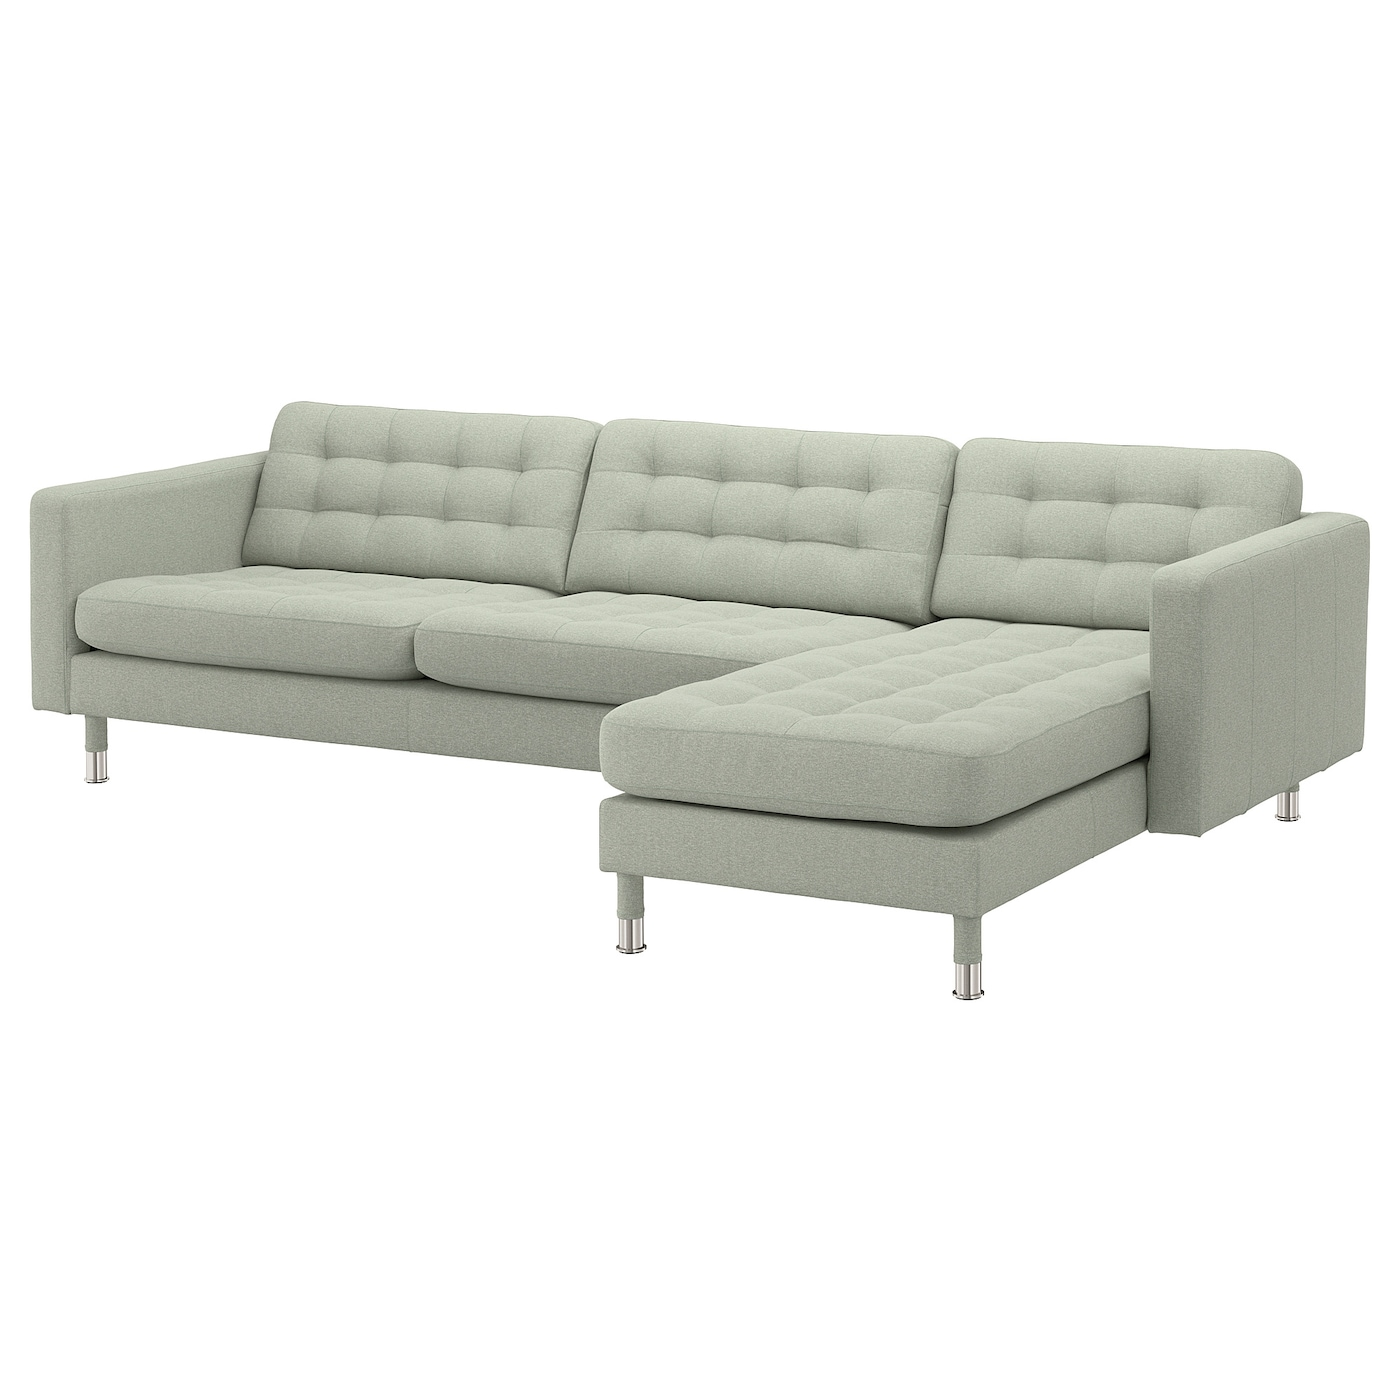 landskrona 4 seat sofa with chaise longue gunnared light green metal ikea. Black Bedroom Furniture Sets. Home Design Ideas